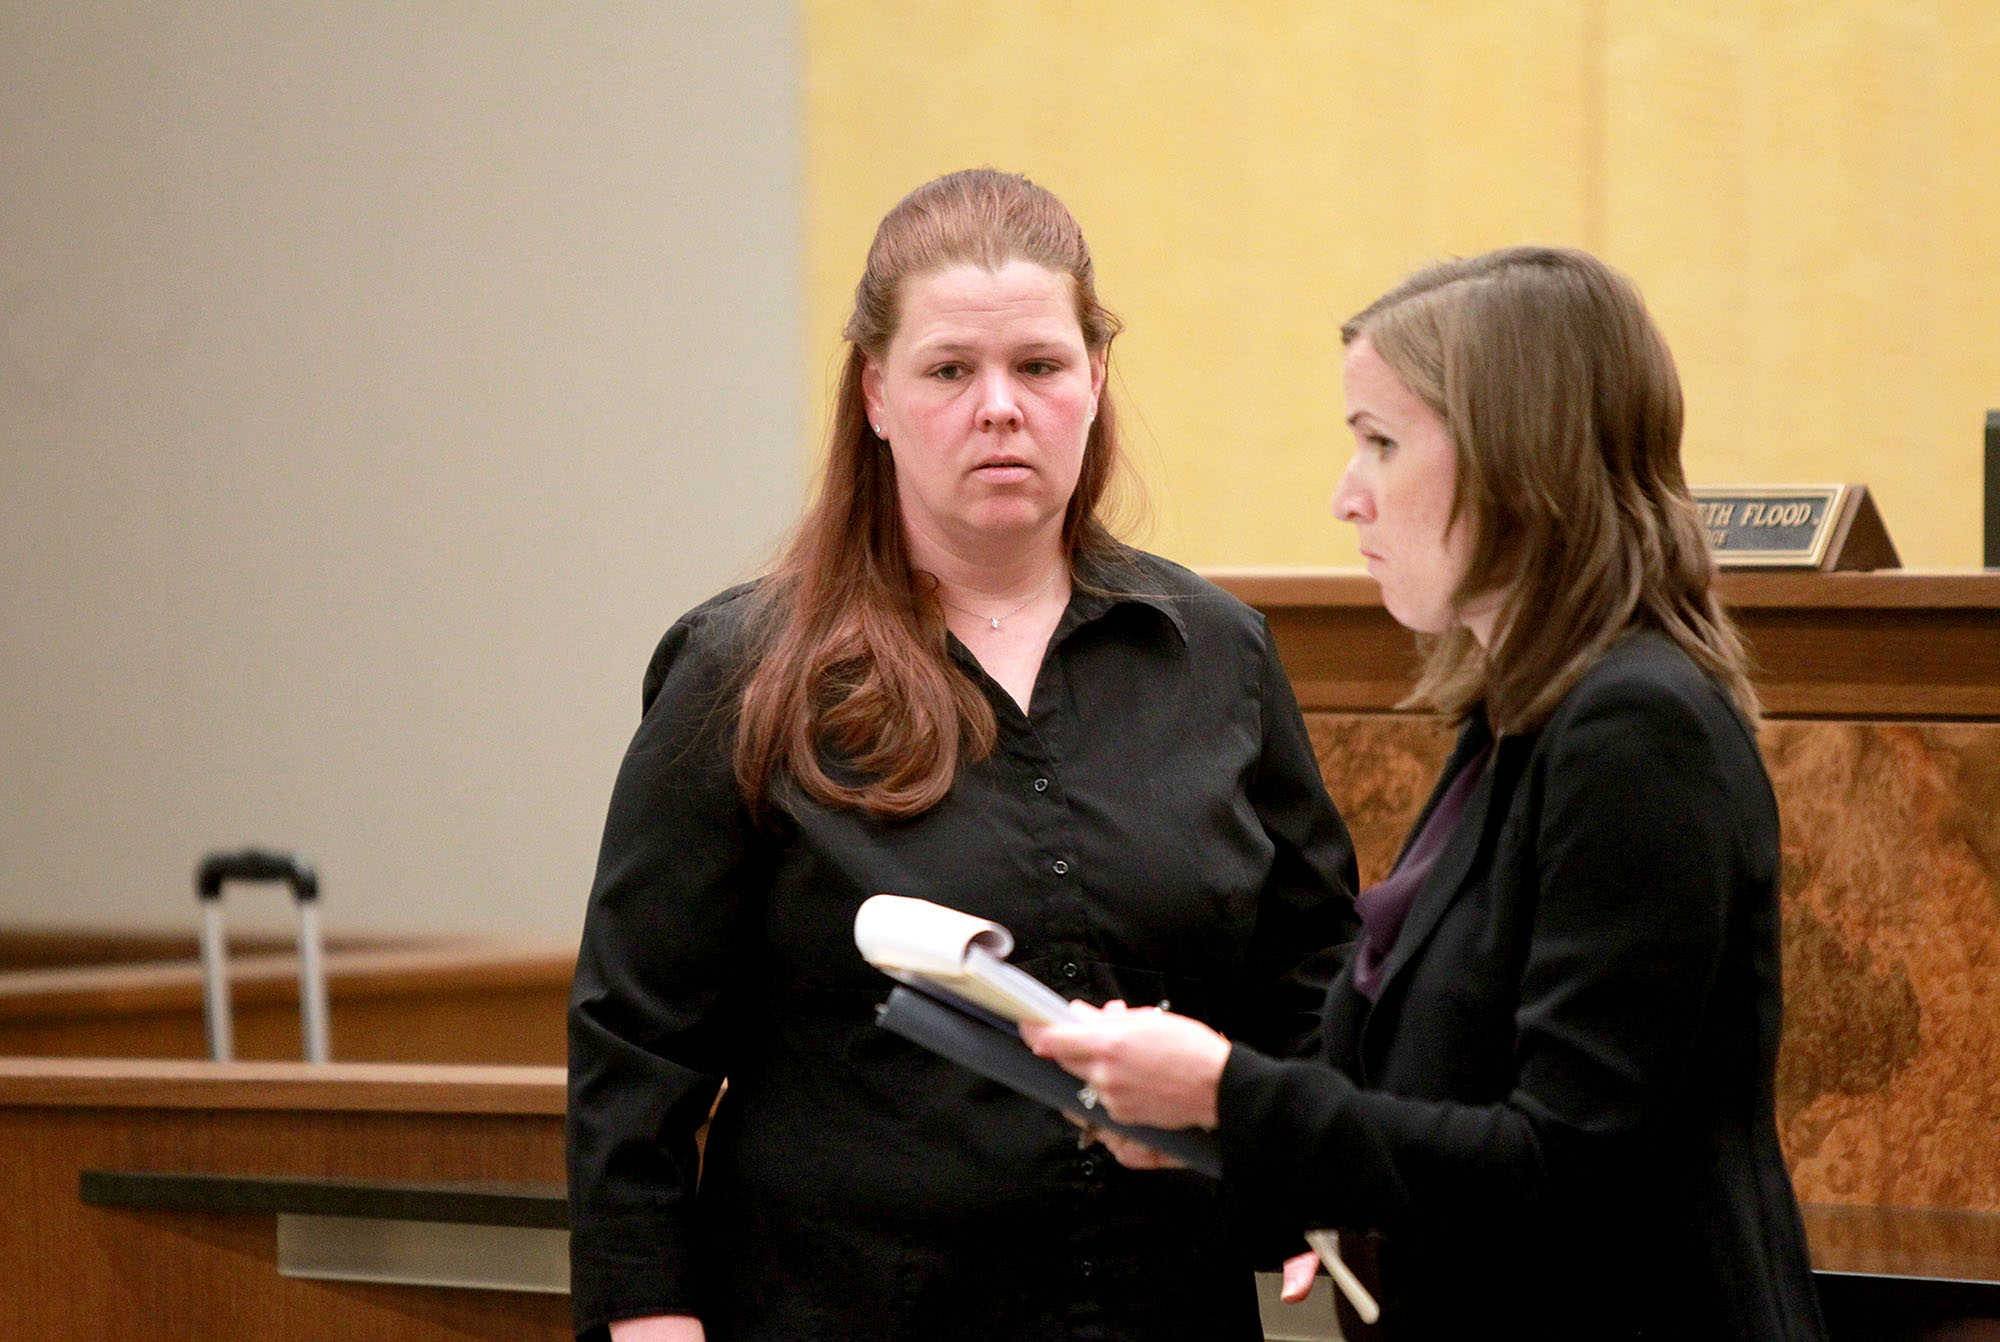 Stacy Fiebelkorn, left, confers with her attorney, Alexis Costello, during an appearance before Kane County Associate Judge Elizabeth Flood in an animal neglect case Thursday at the St. Charles branch court.